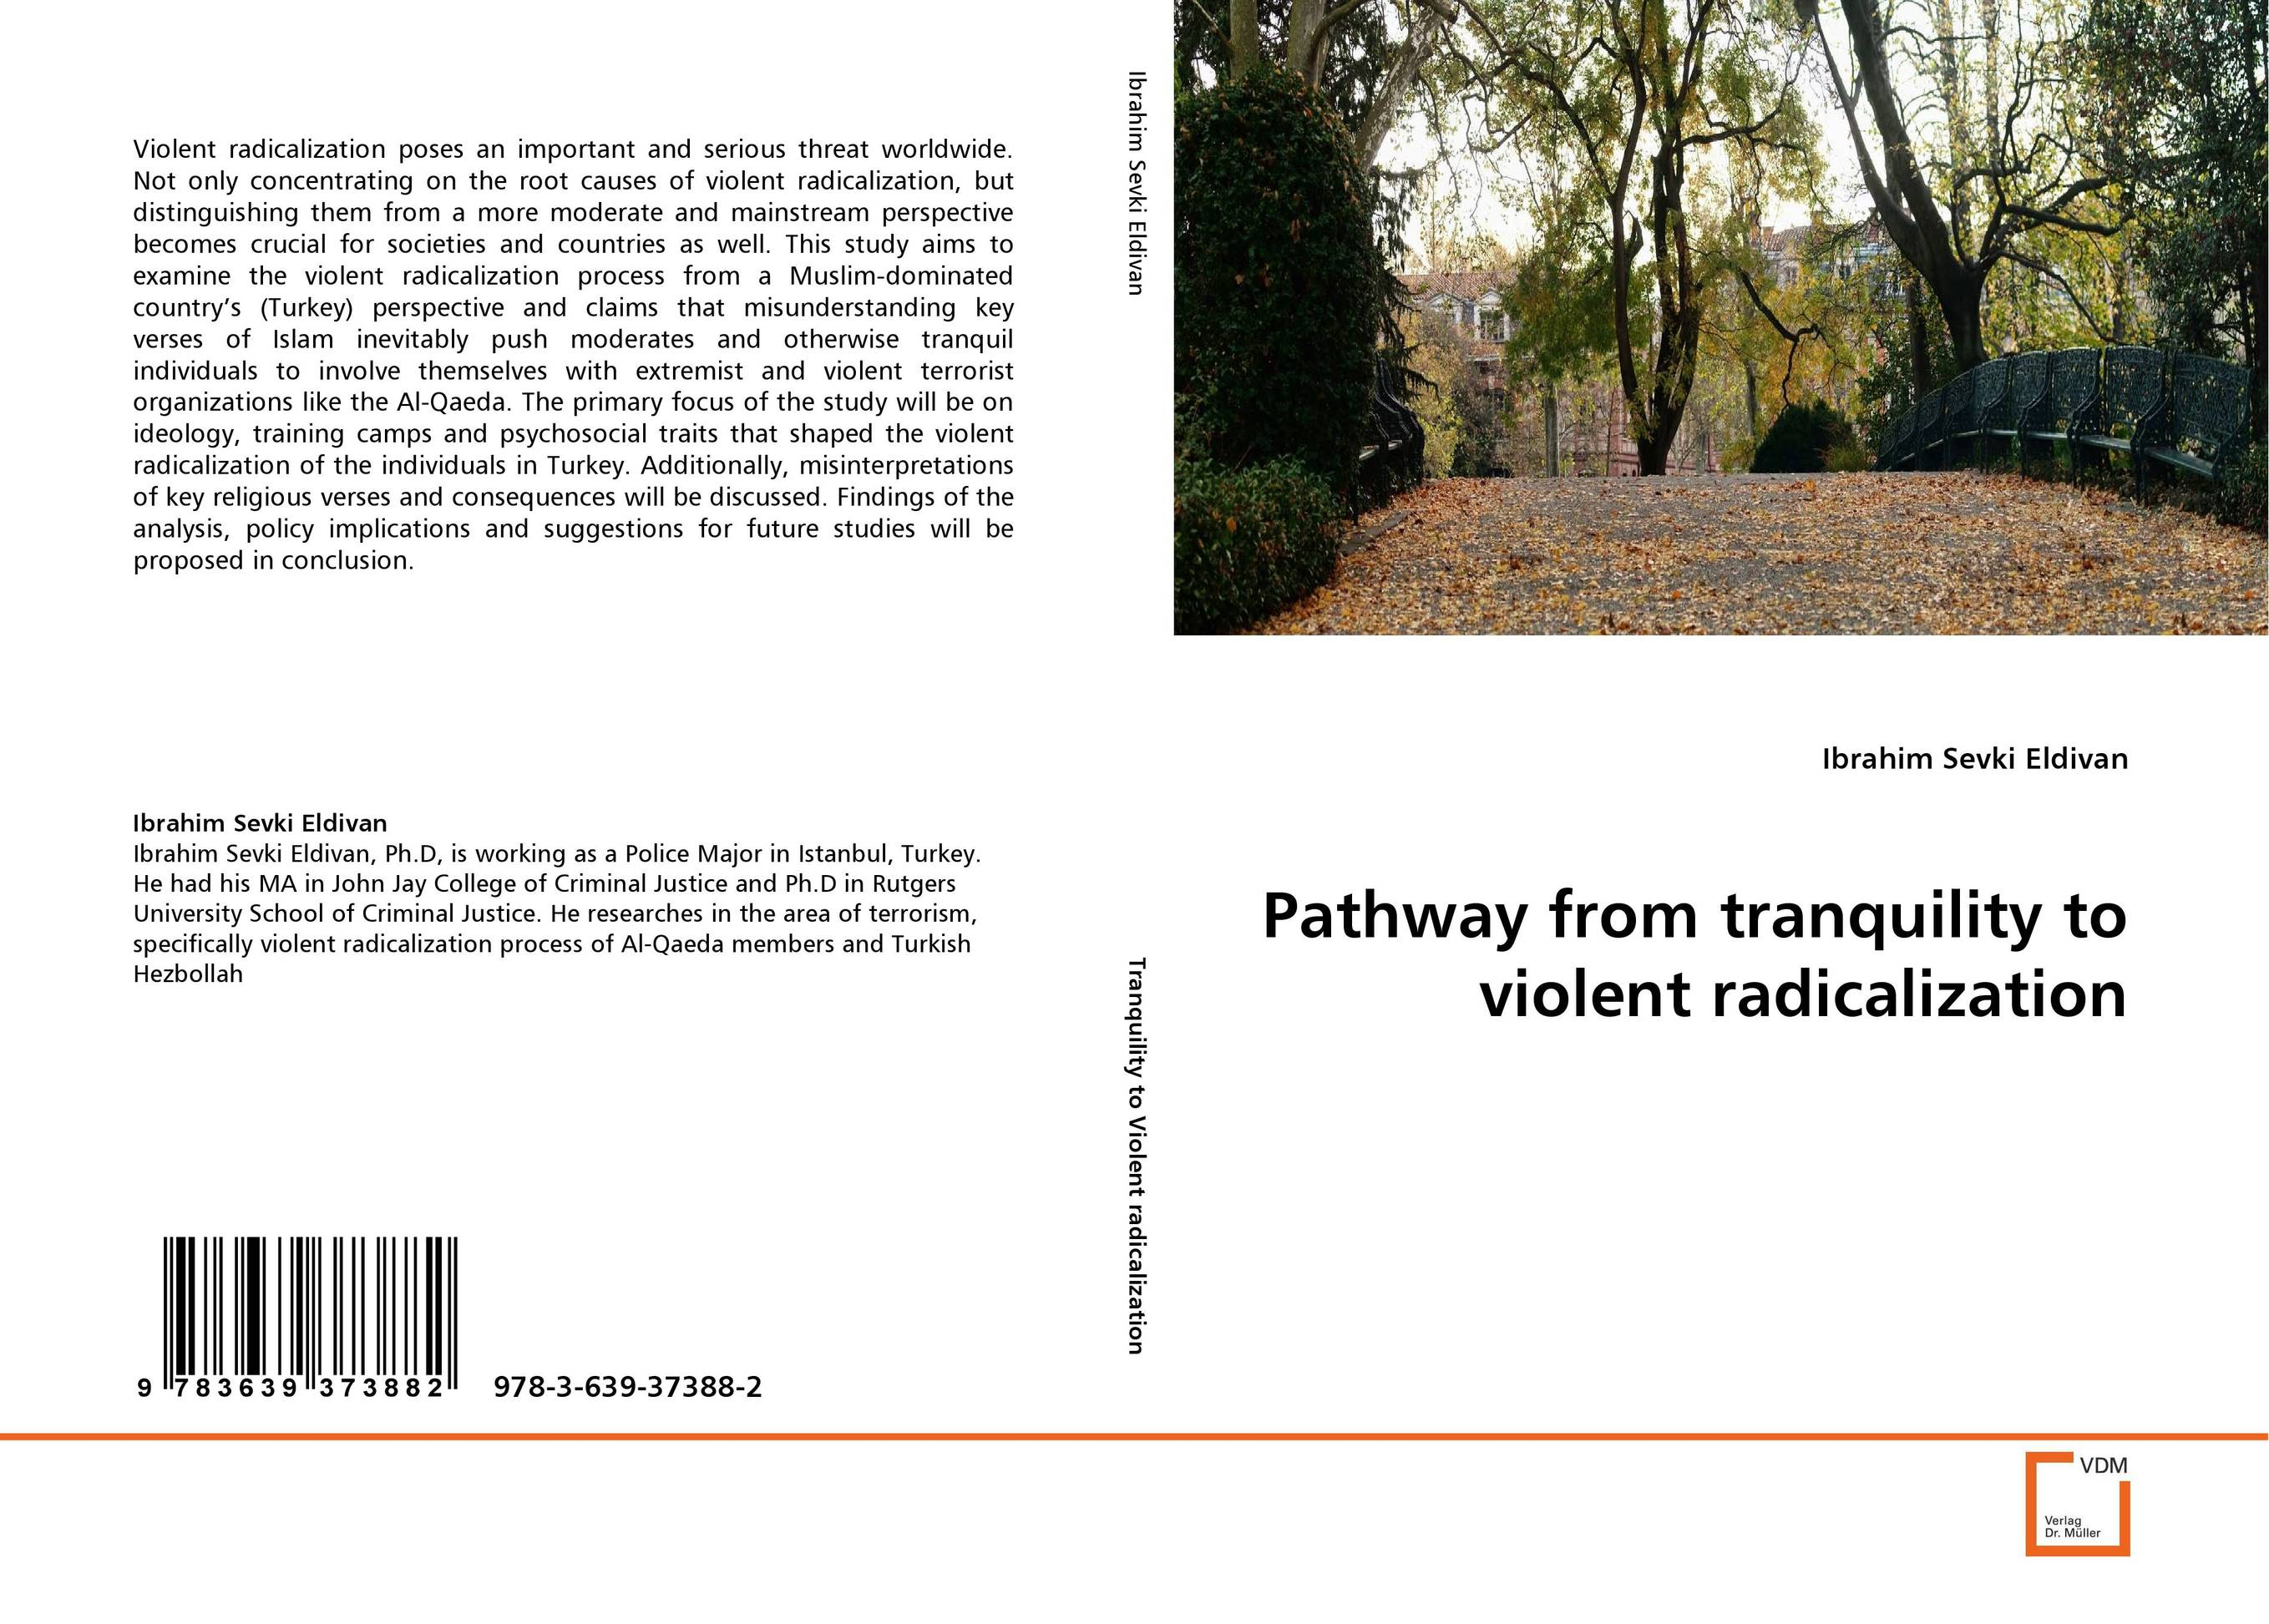 Pathway from tranquility to violent radicalization a child s garden of verses